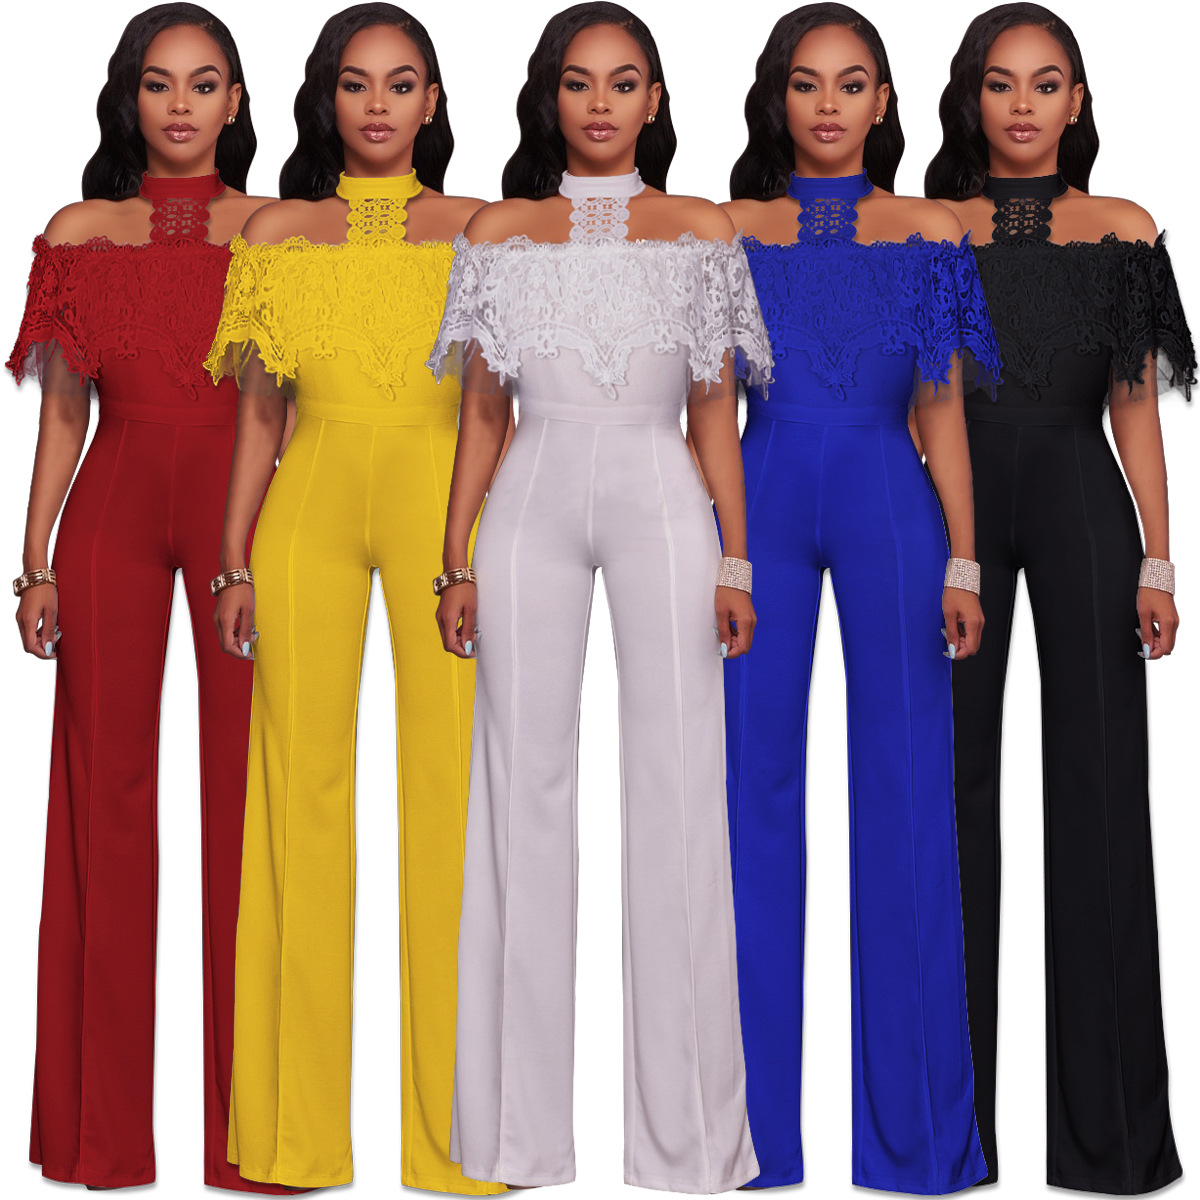 93df372c3177 LIVA GIRL Stylish Womens Sexy Hang Neck Off Shoulder Lace Top Strapless  Jumpsuit Rompers Fashion Wide Leg One Piece Outfits-in Jumpsuits from  Women s ...